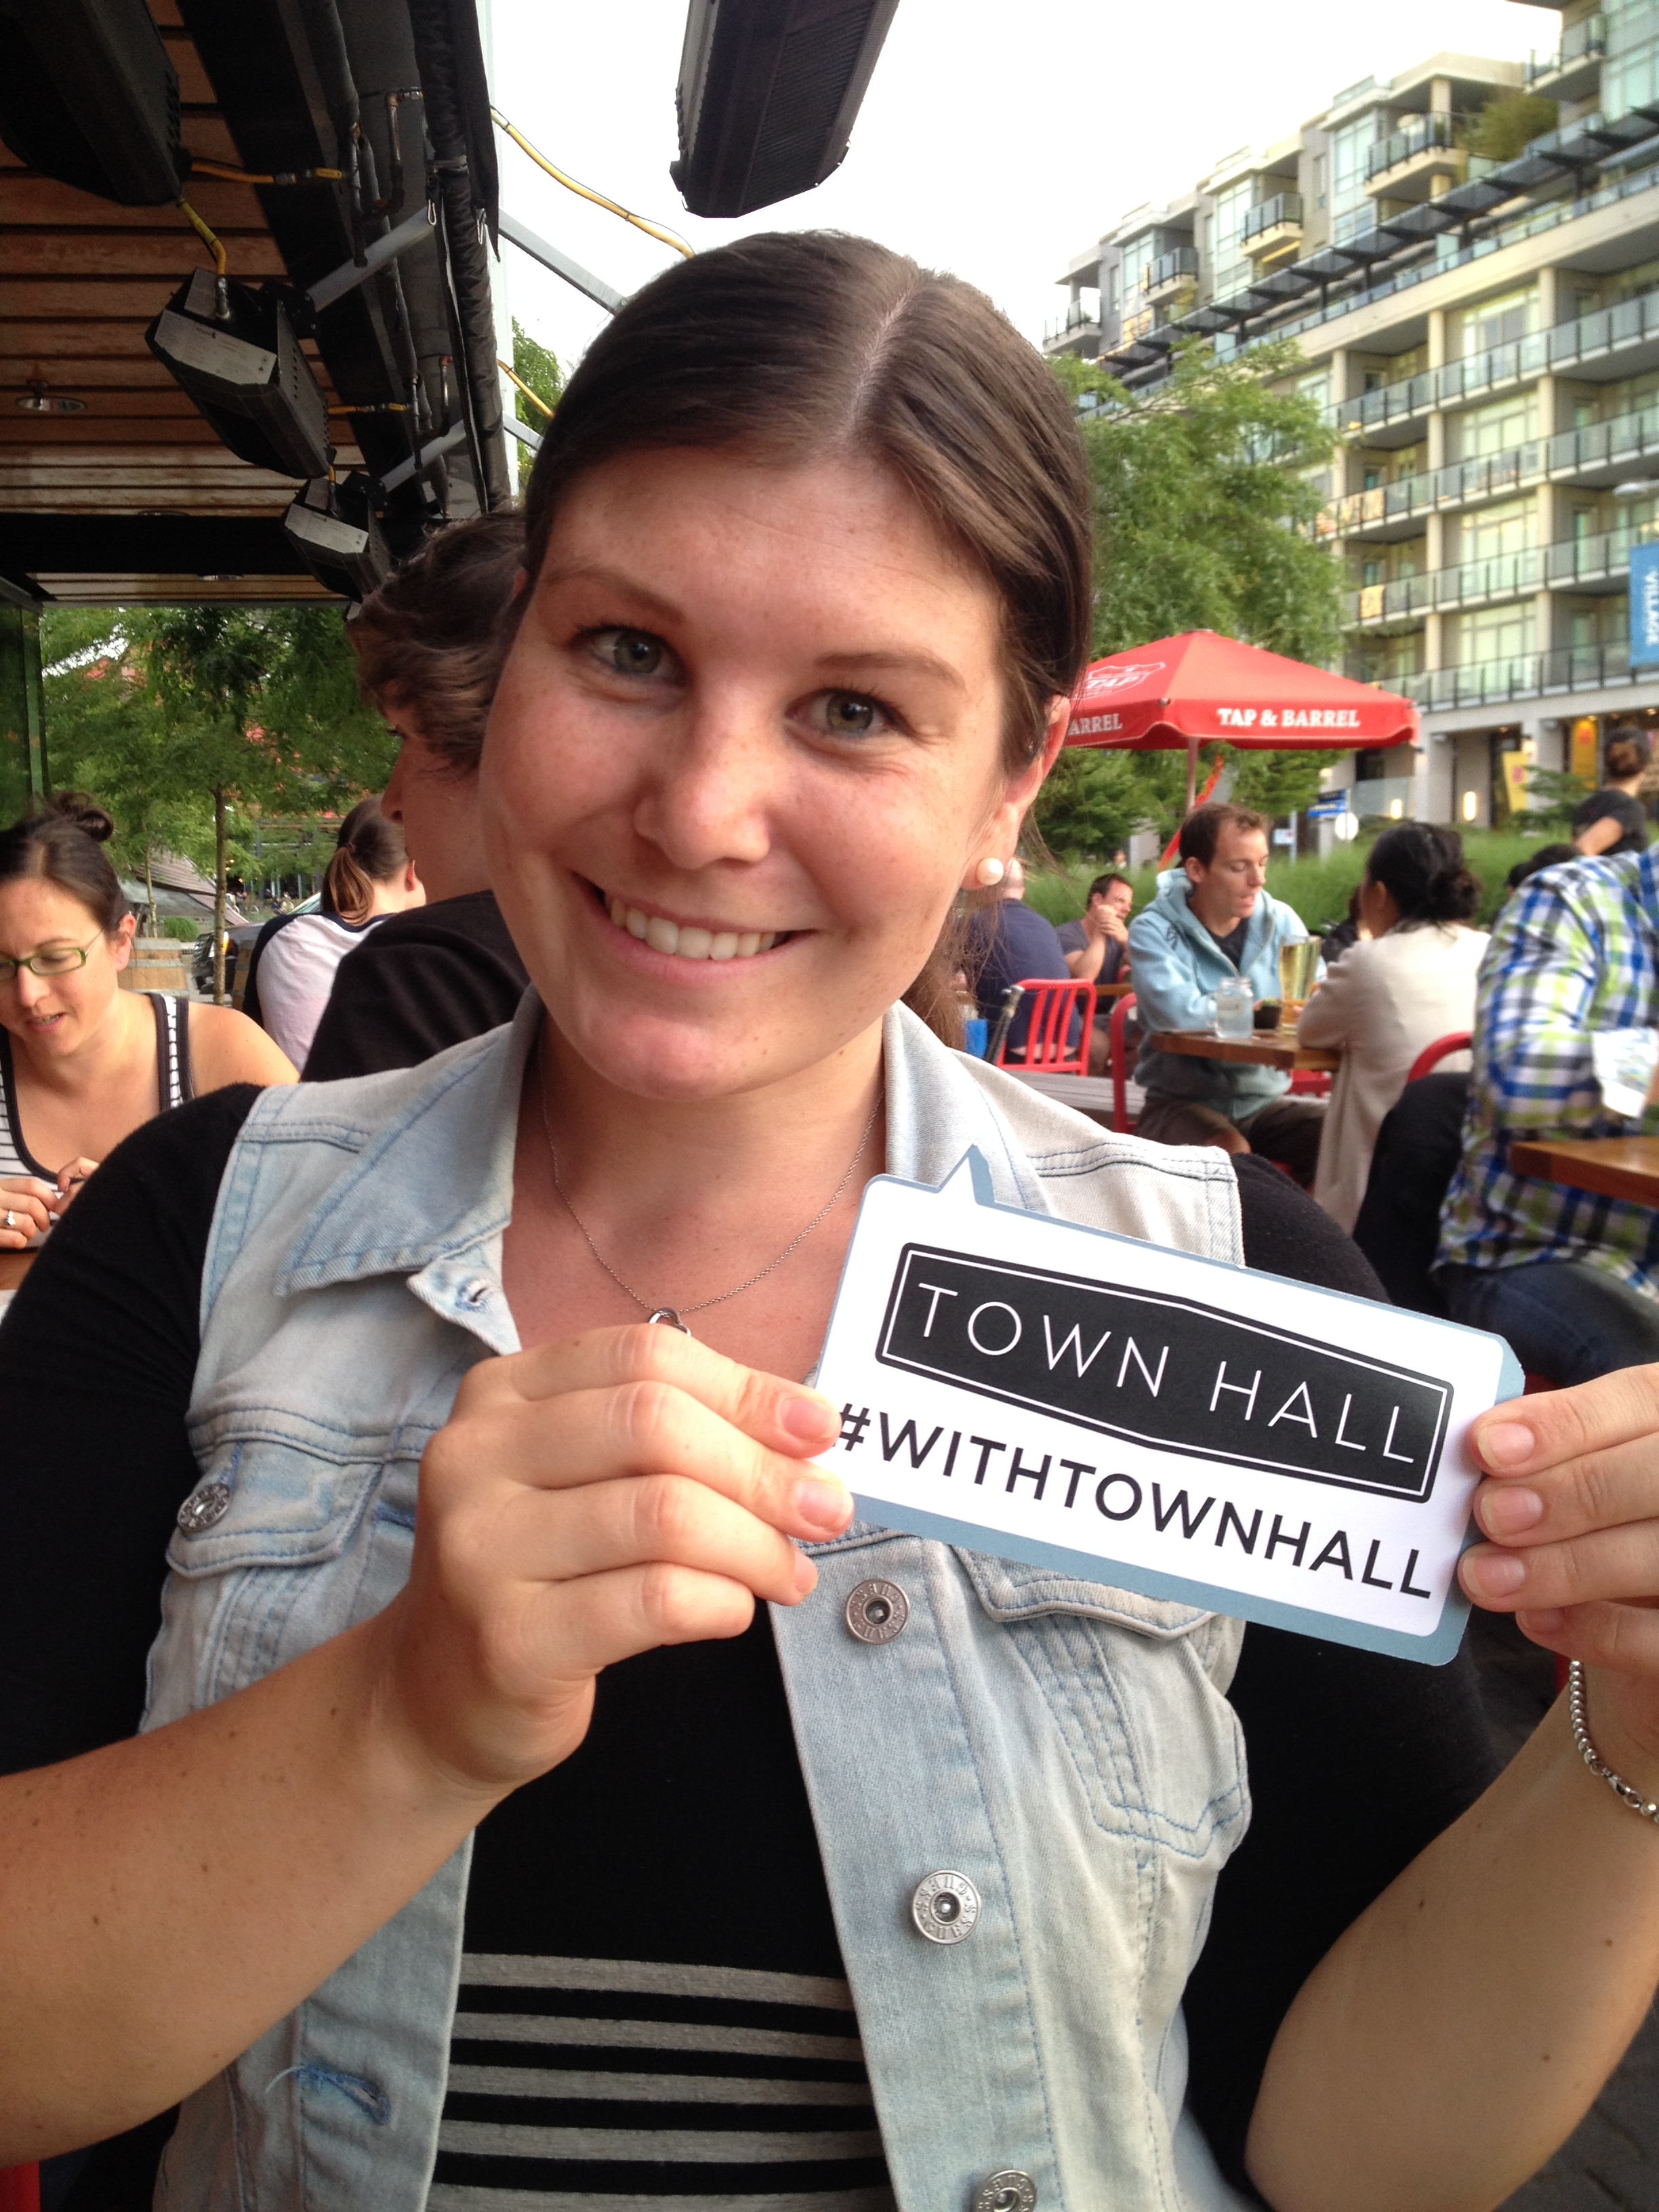 Please meet Kayla Bordignon #withTownHall